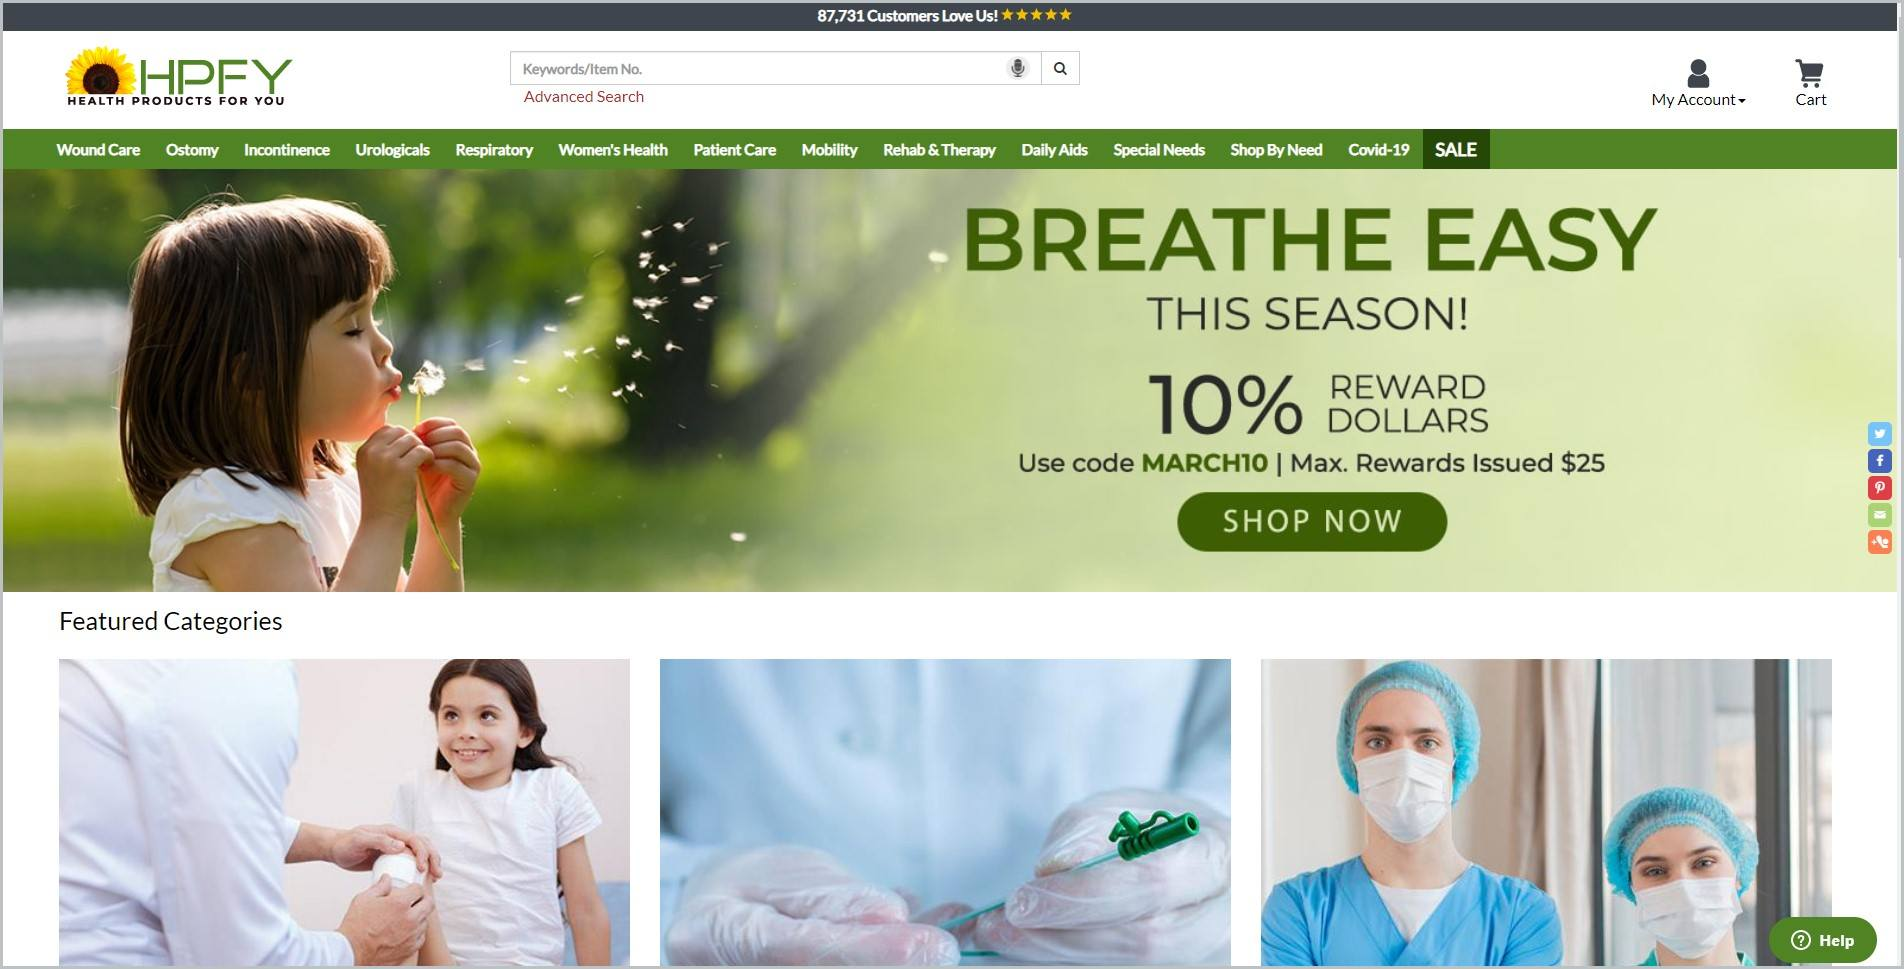 screenshot of Health Products For You homepage with black announcement bar, white header with the website's name and search bar, showcasing images of some of their products